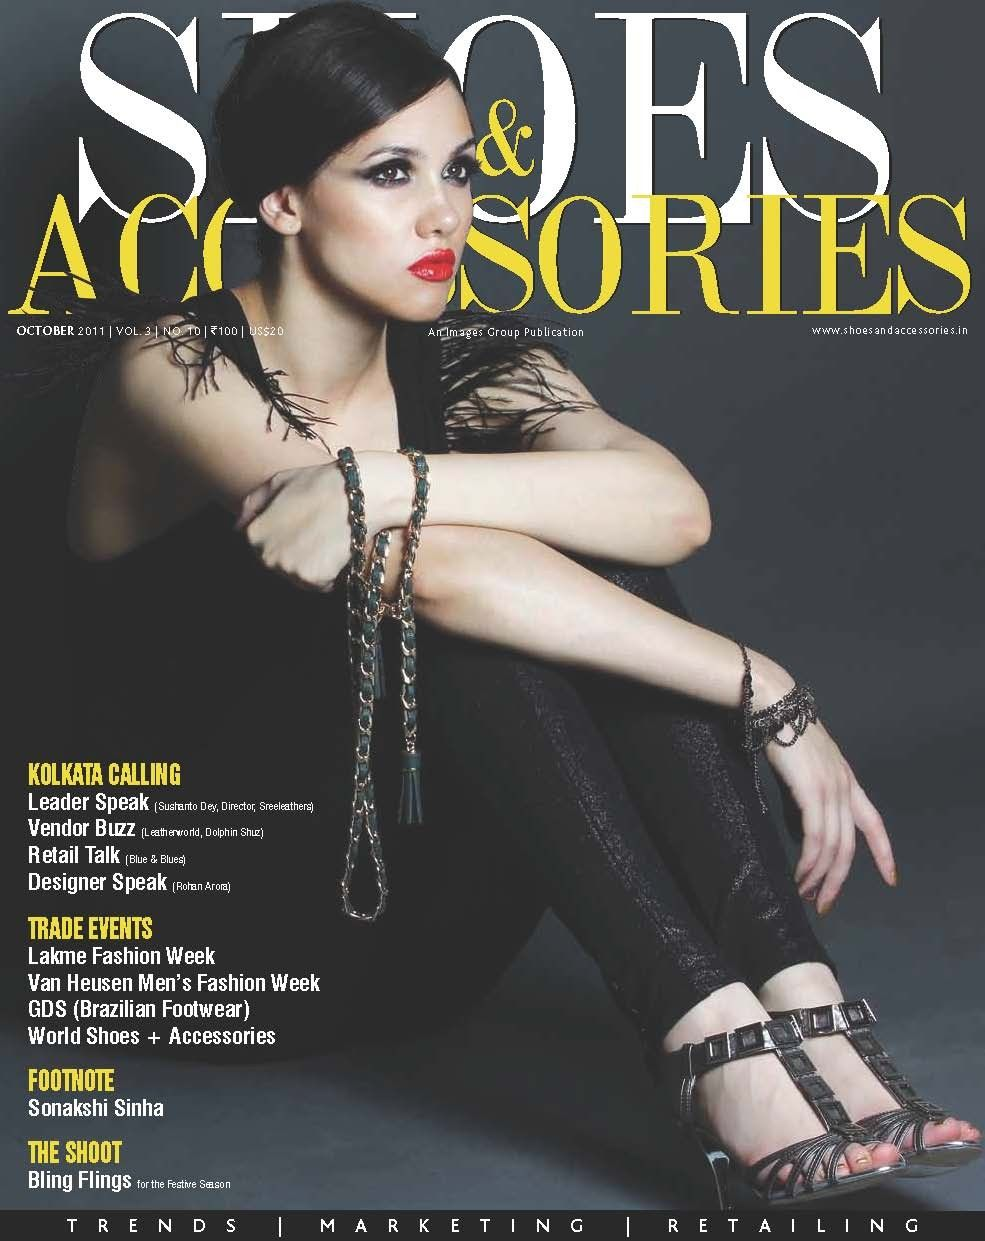 Shoes and Accessories  Magazine - Buy, Subscribe, Download and Read Shoes and Accessories on your iPad, iPhone, iPod Touch, Android and on the web only through Magzter